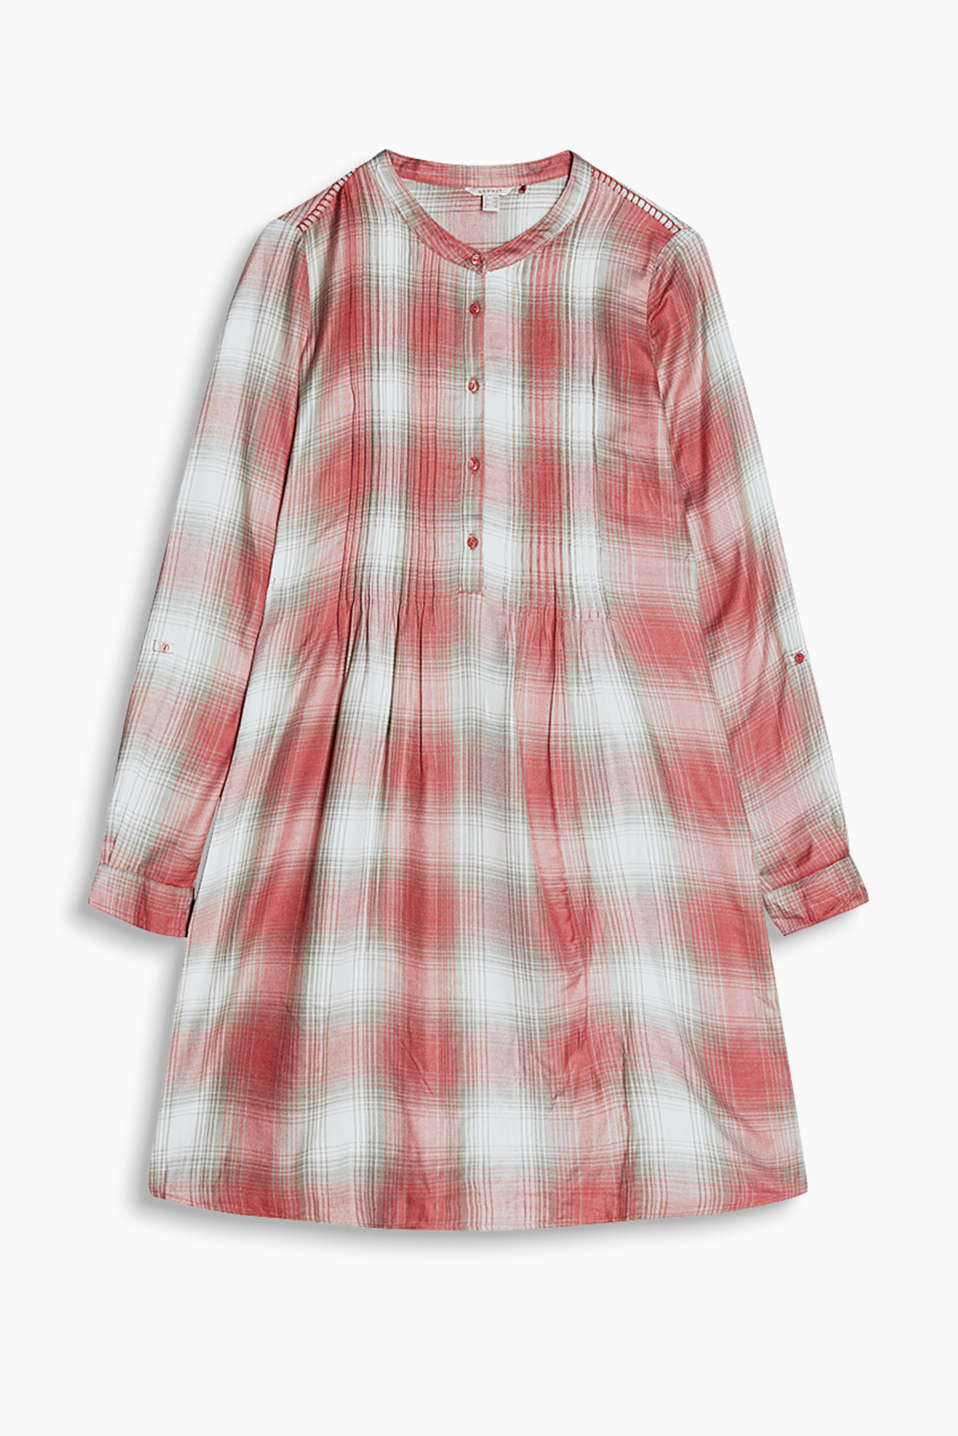 Made of flowing viscose: shirt blouse dress with turn-up sleeves, a stand-up collar and pintucks